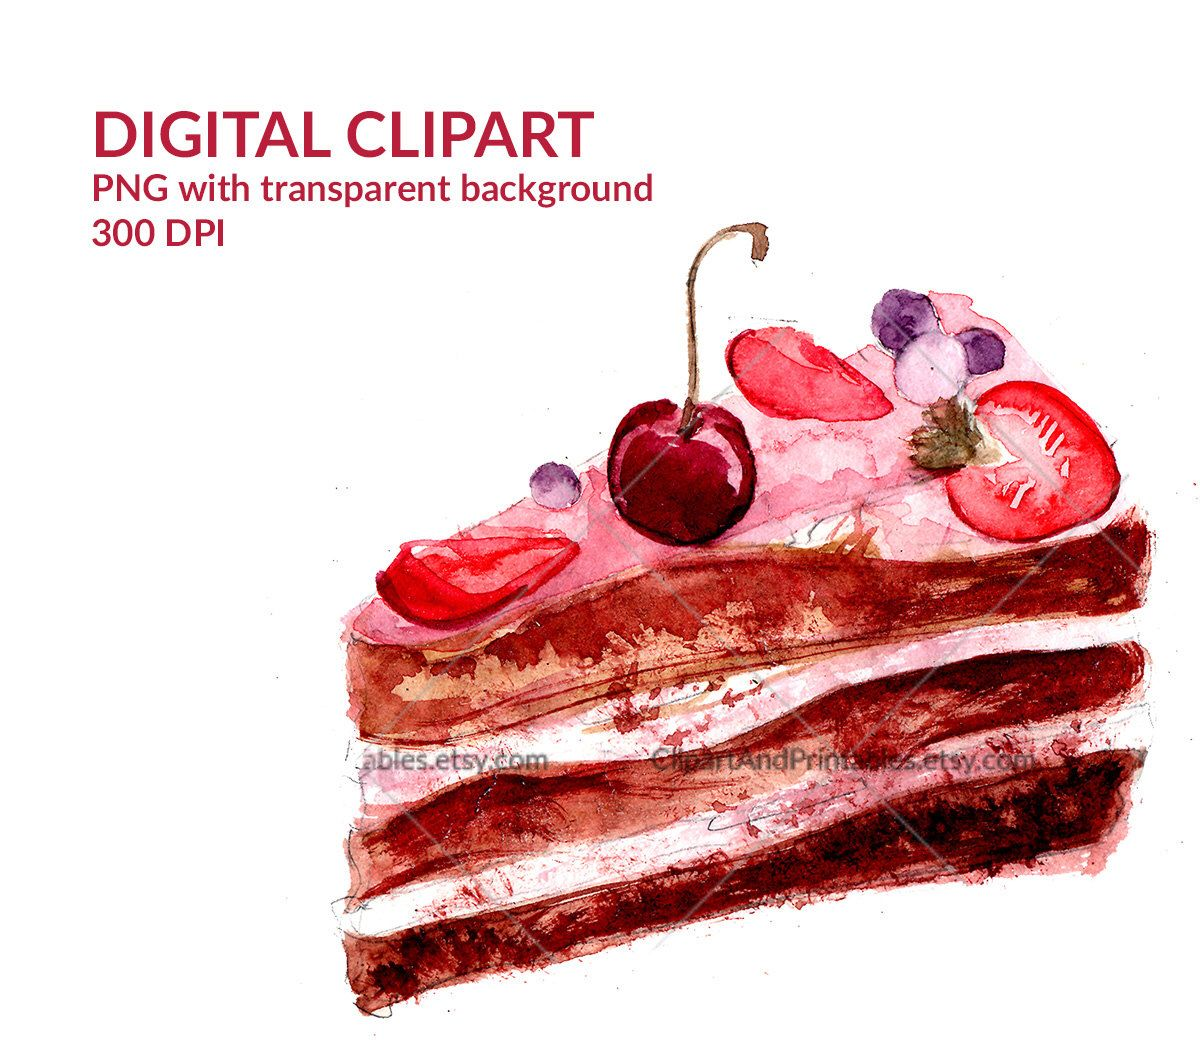 slice of chocolate cake decorated with cherry digital illustration watercolor clip art with transparent [ 1200 x 1062 Pixel ]